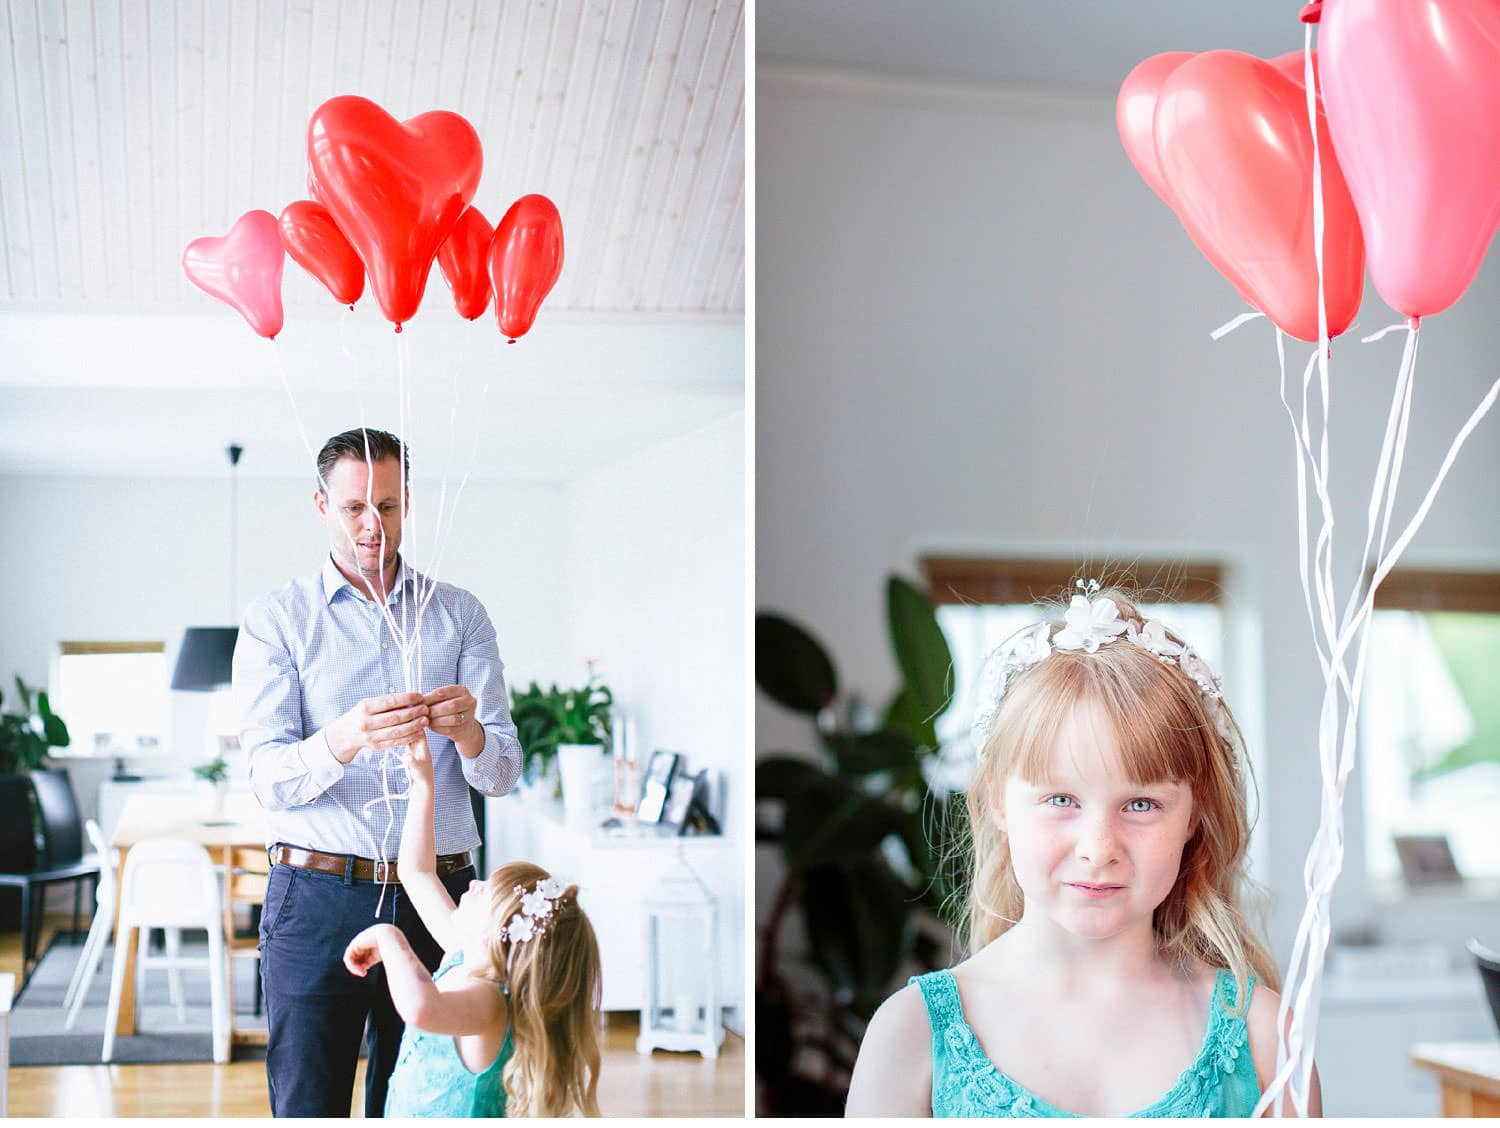 knivtsa stockholm familjefotografering lifestyle portrait 4 - Love & Happiness portrait, family-session